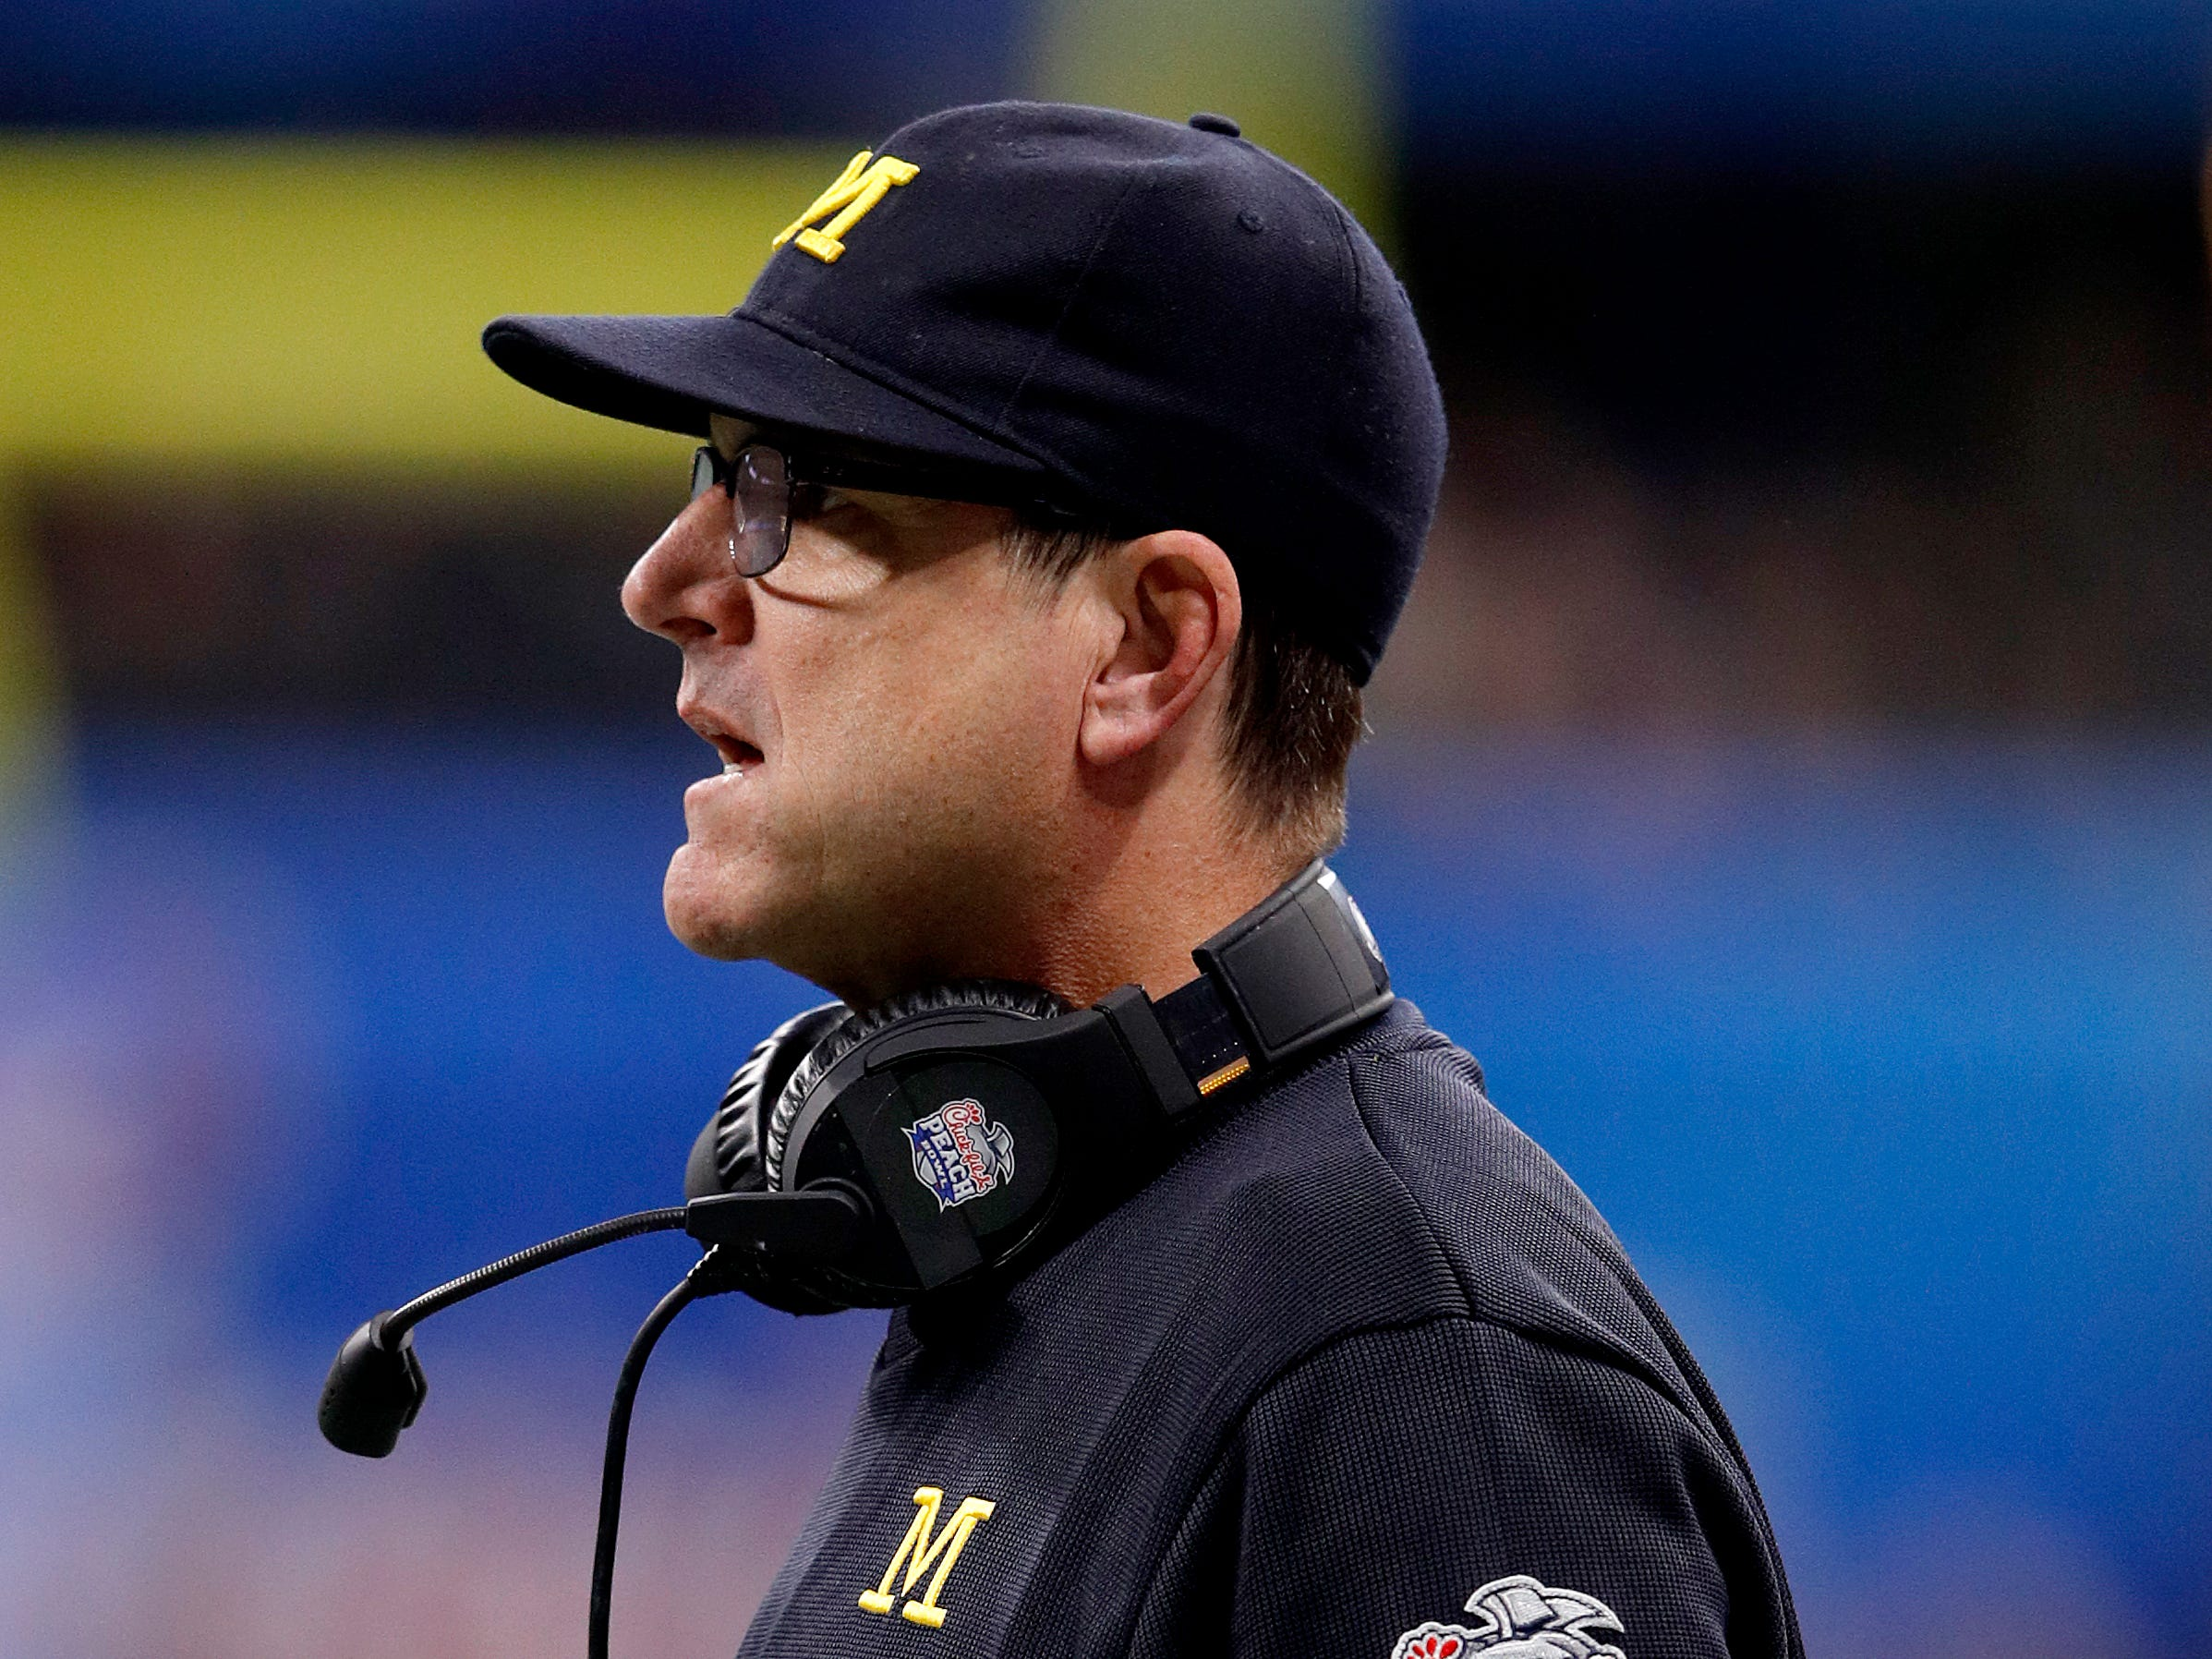 Michigan coach Jim Harbaugh reacts during U-M's 41-15 loss in the Peach Bowl on Saturday, Dec. 29, 2018, in Atlanta.